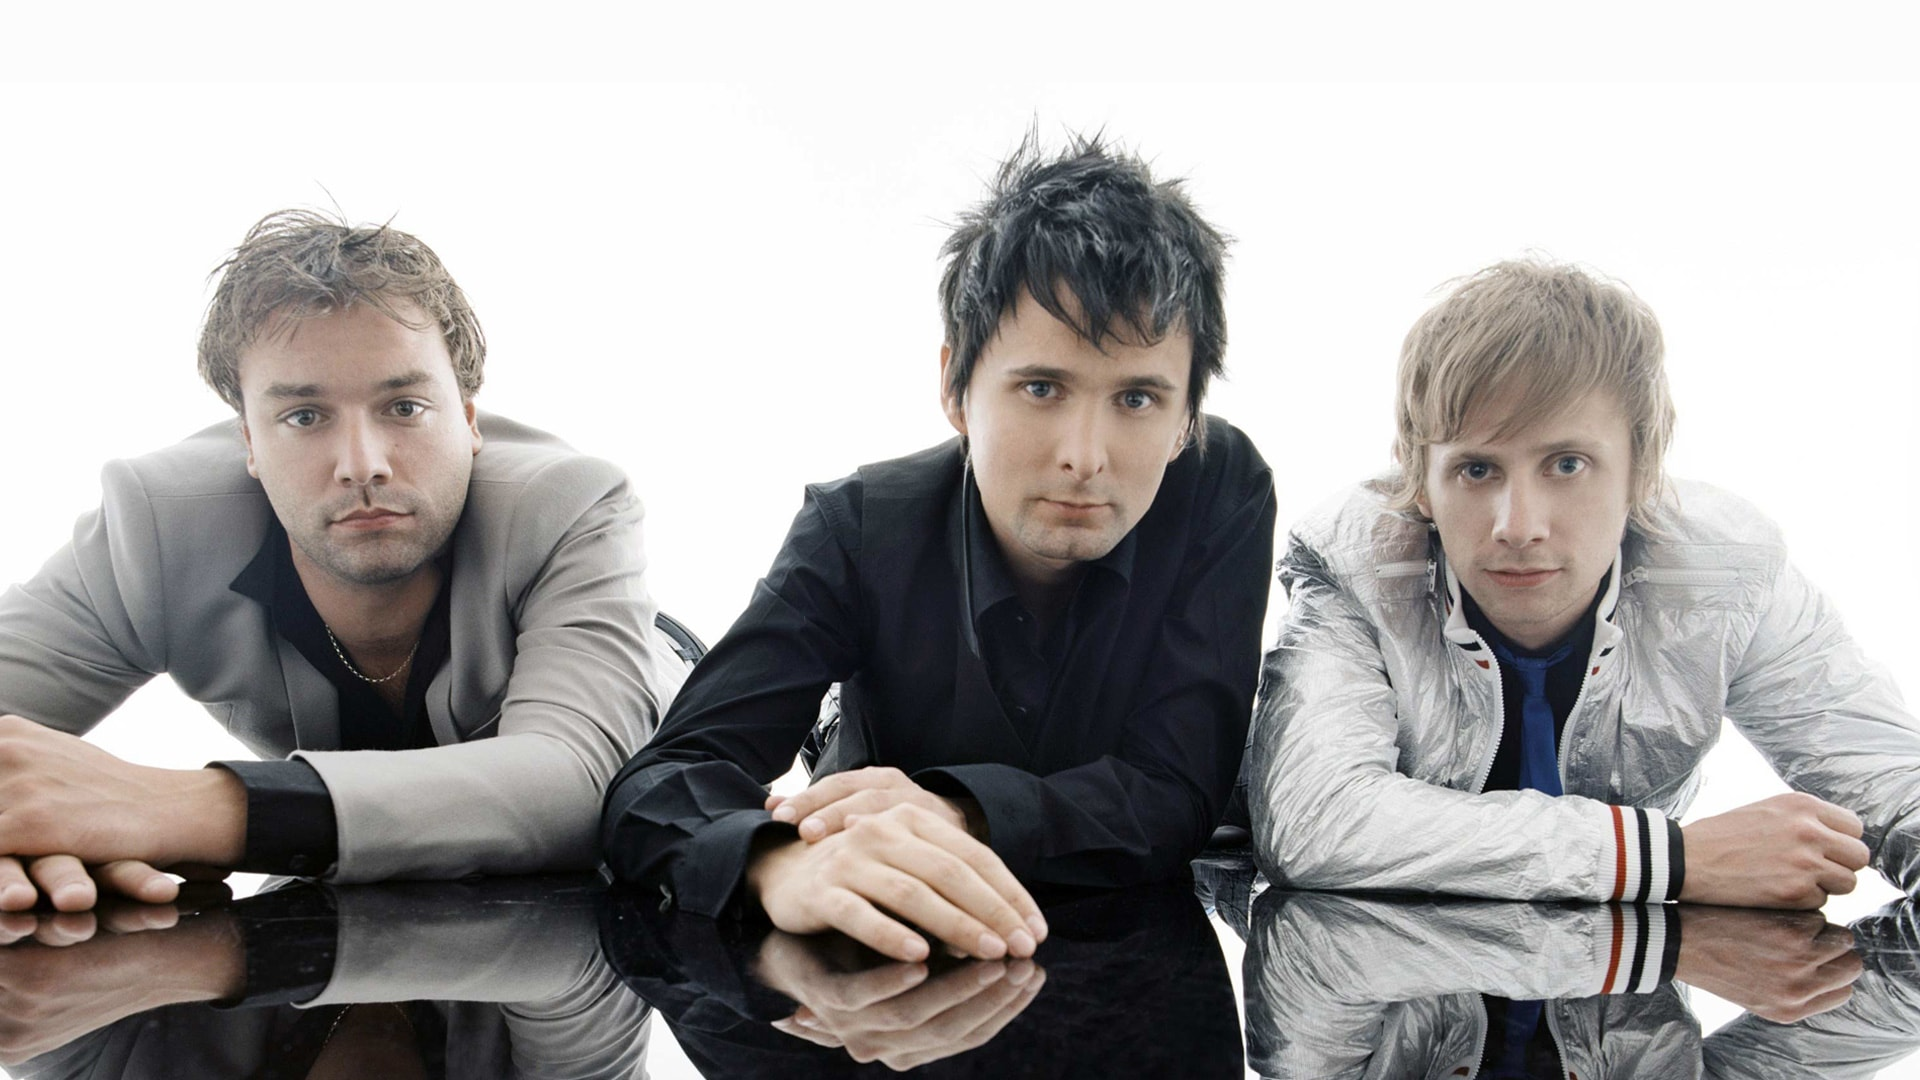 Muse Backgrounds